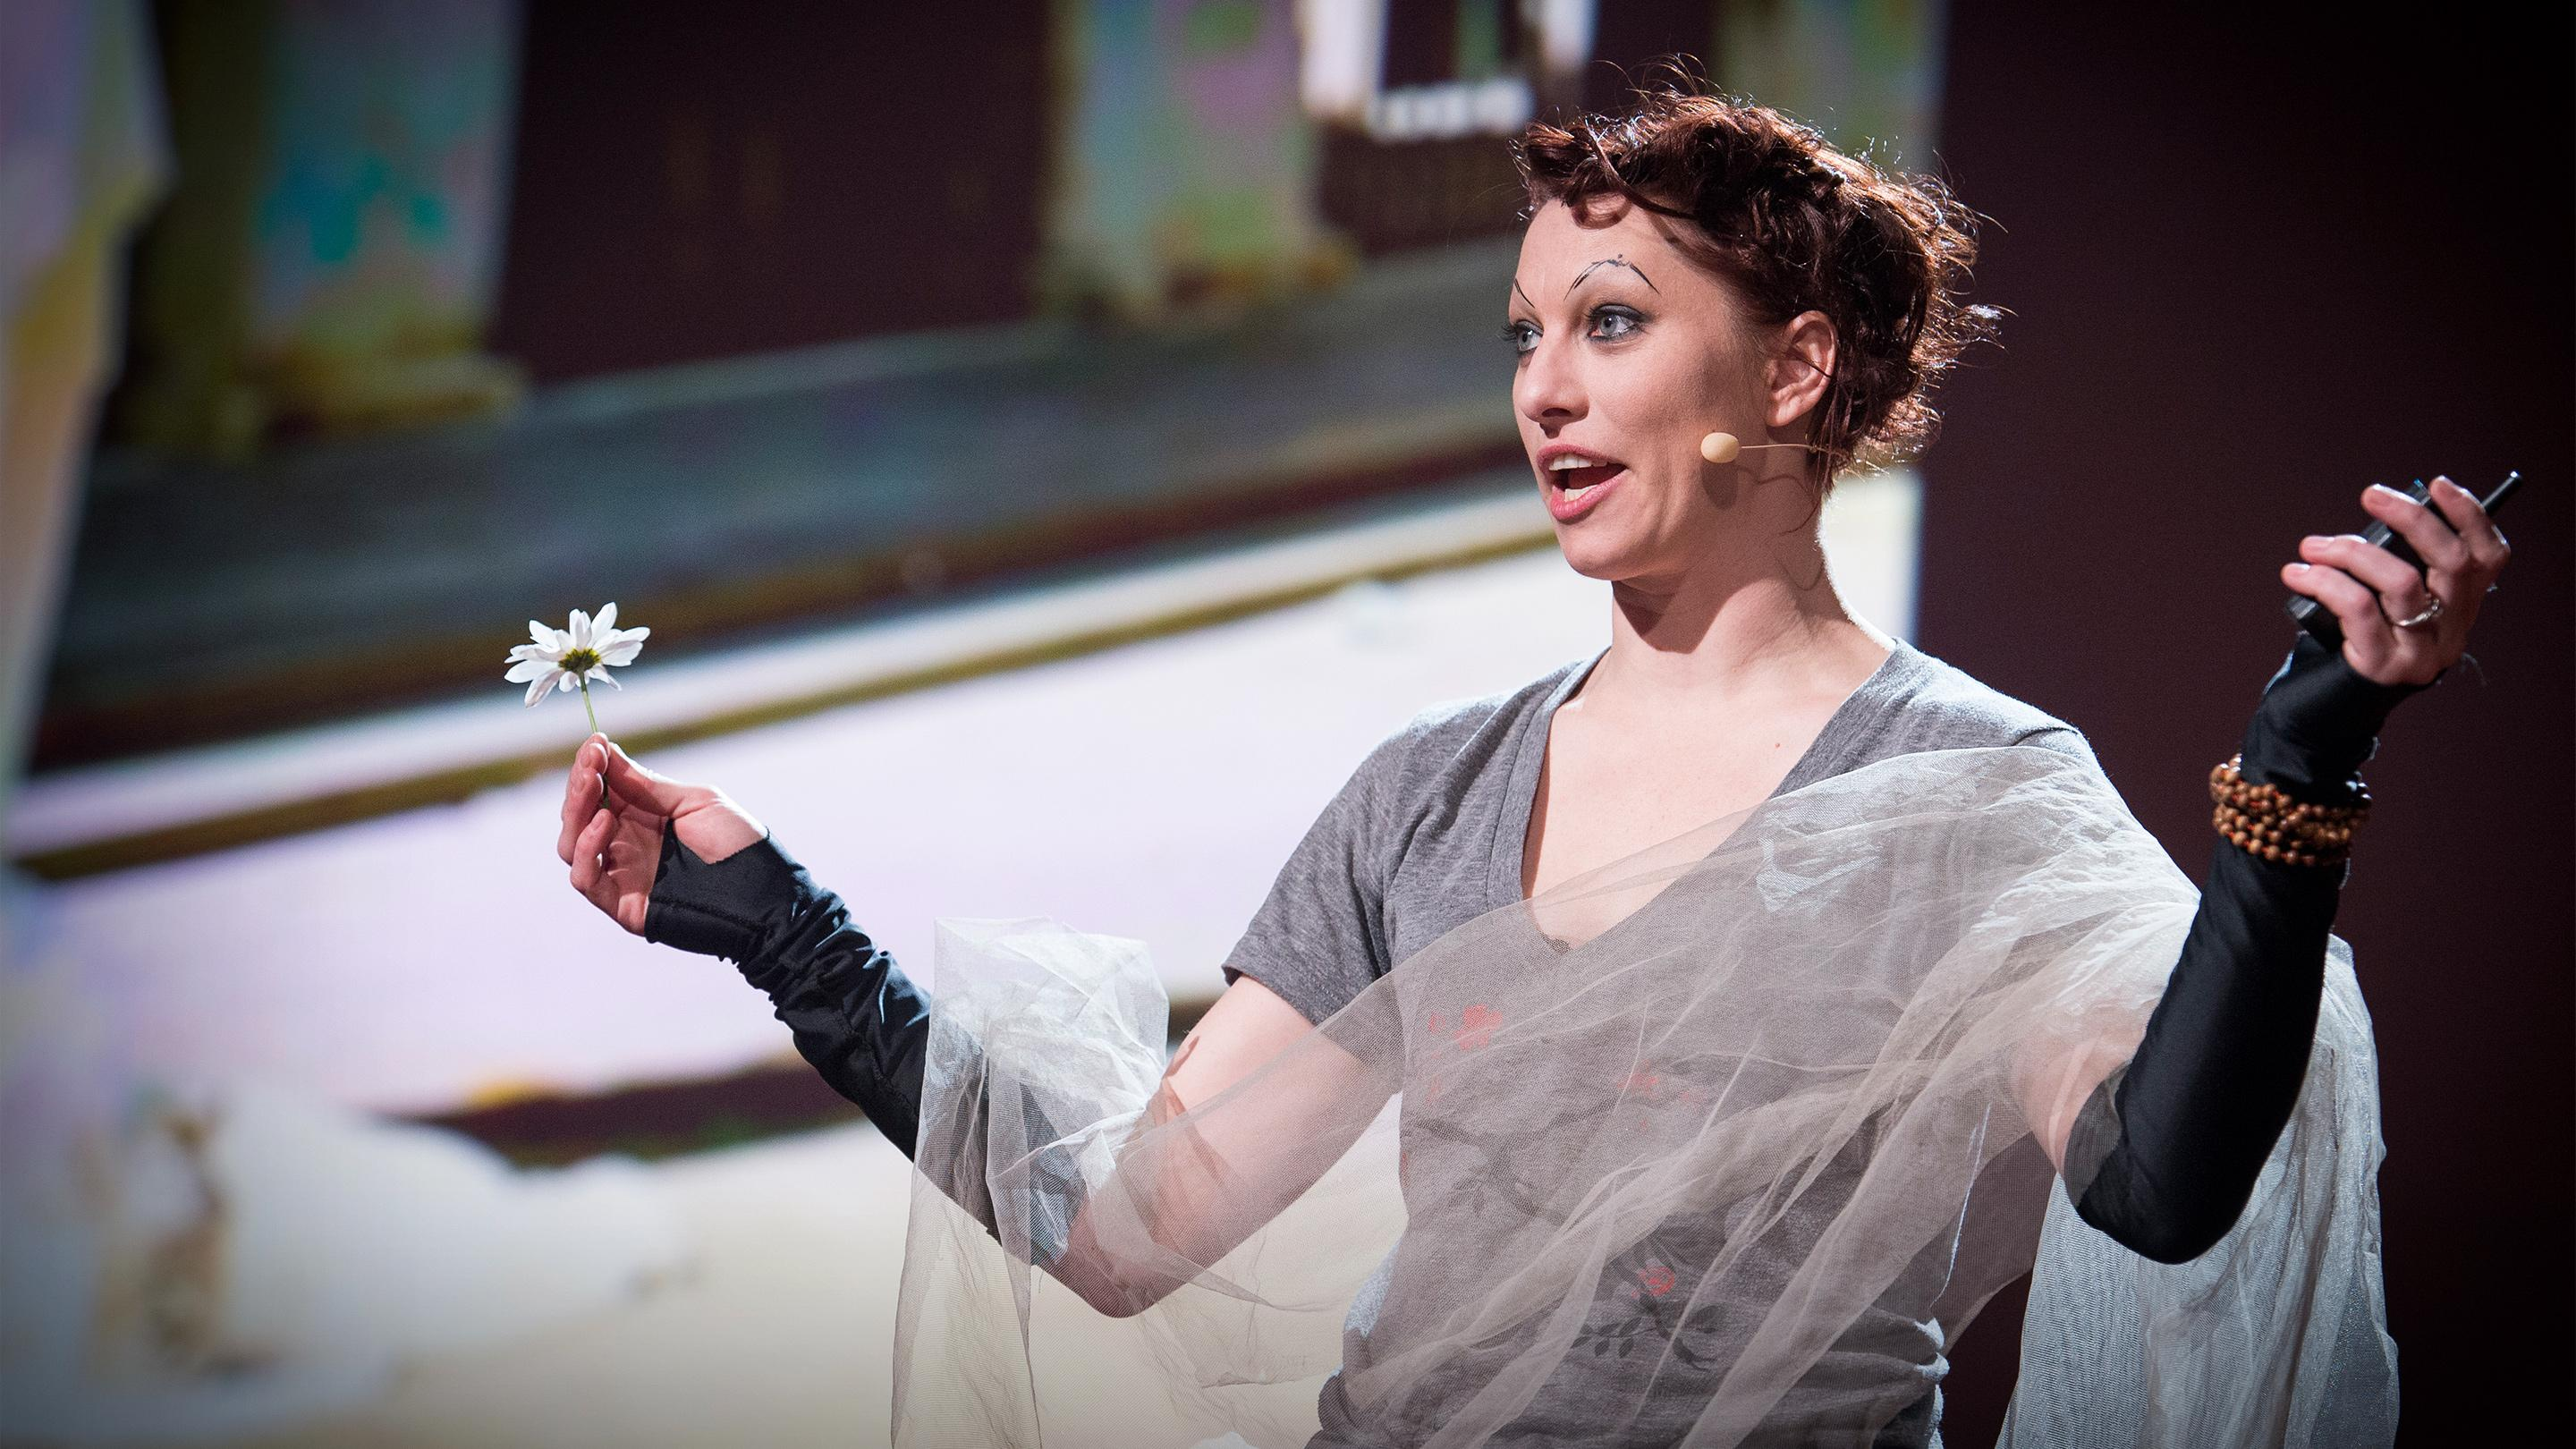 'In My Mind' – Amanda Palmer – Track Of The Day